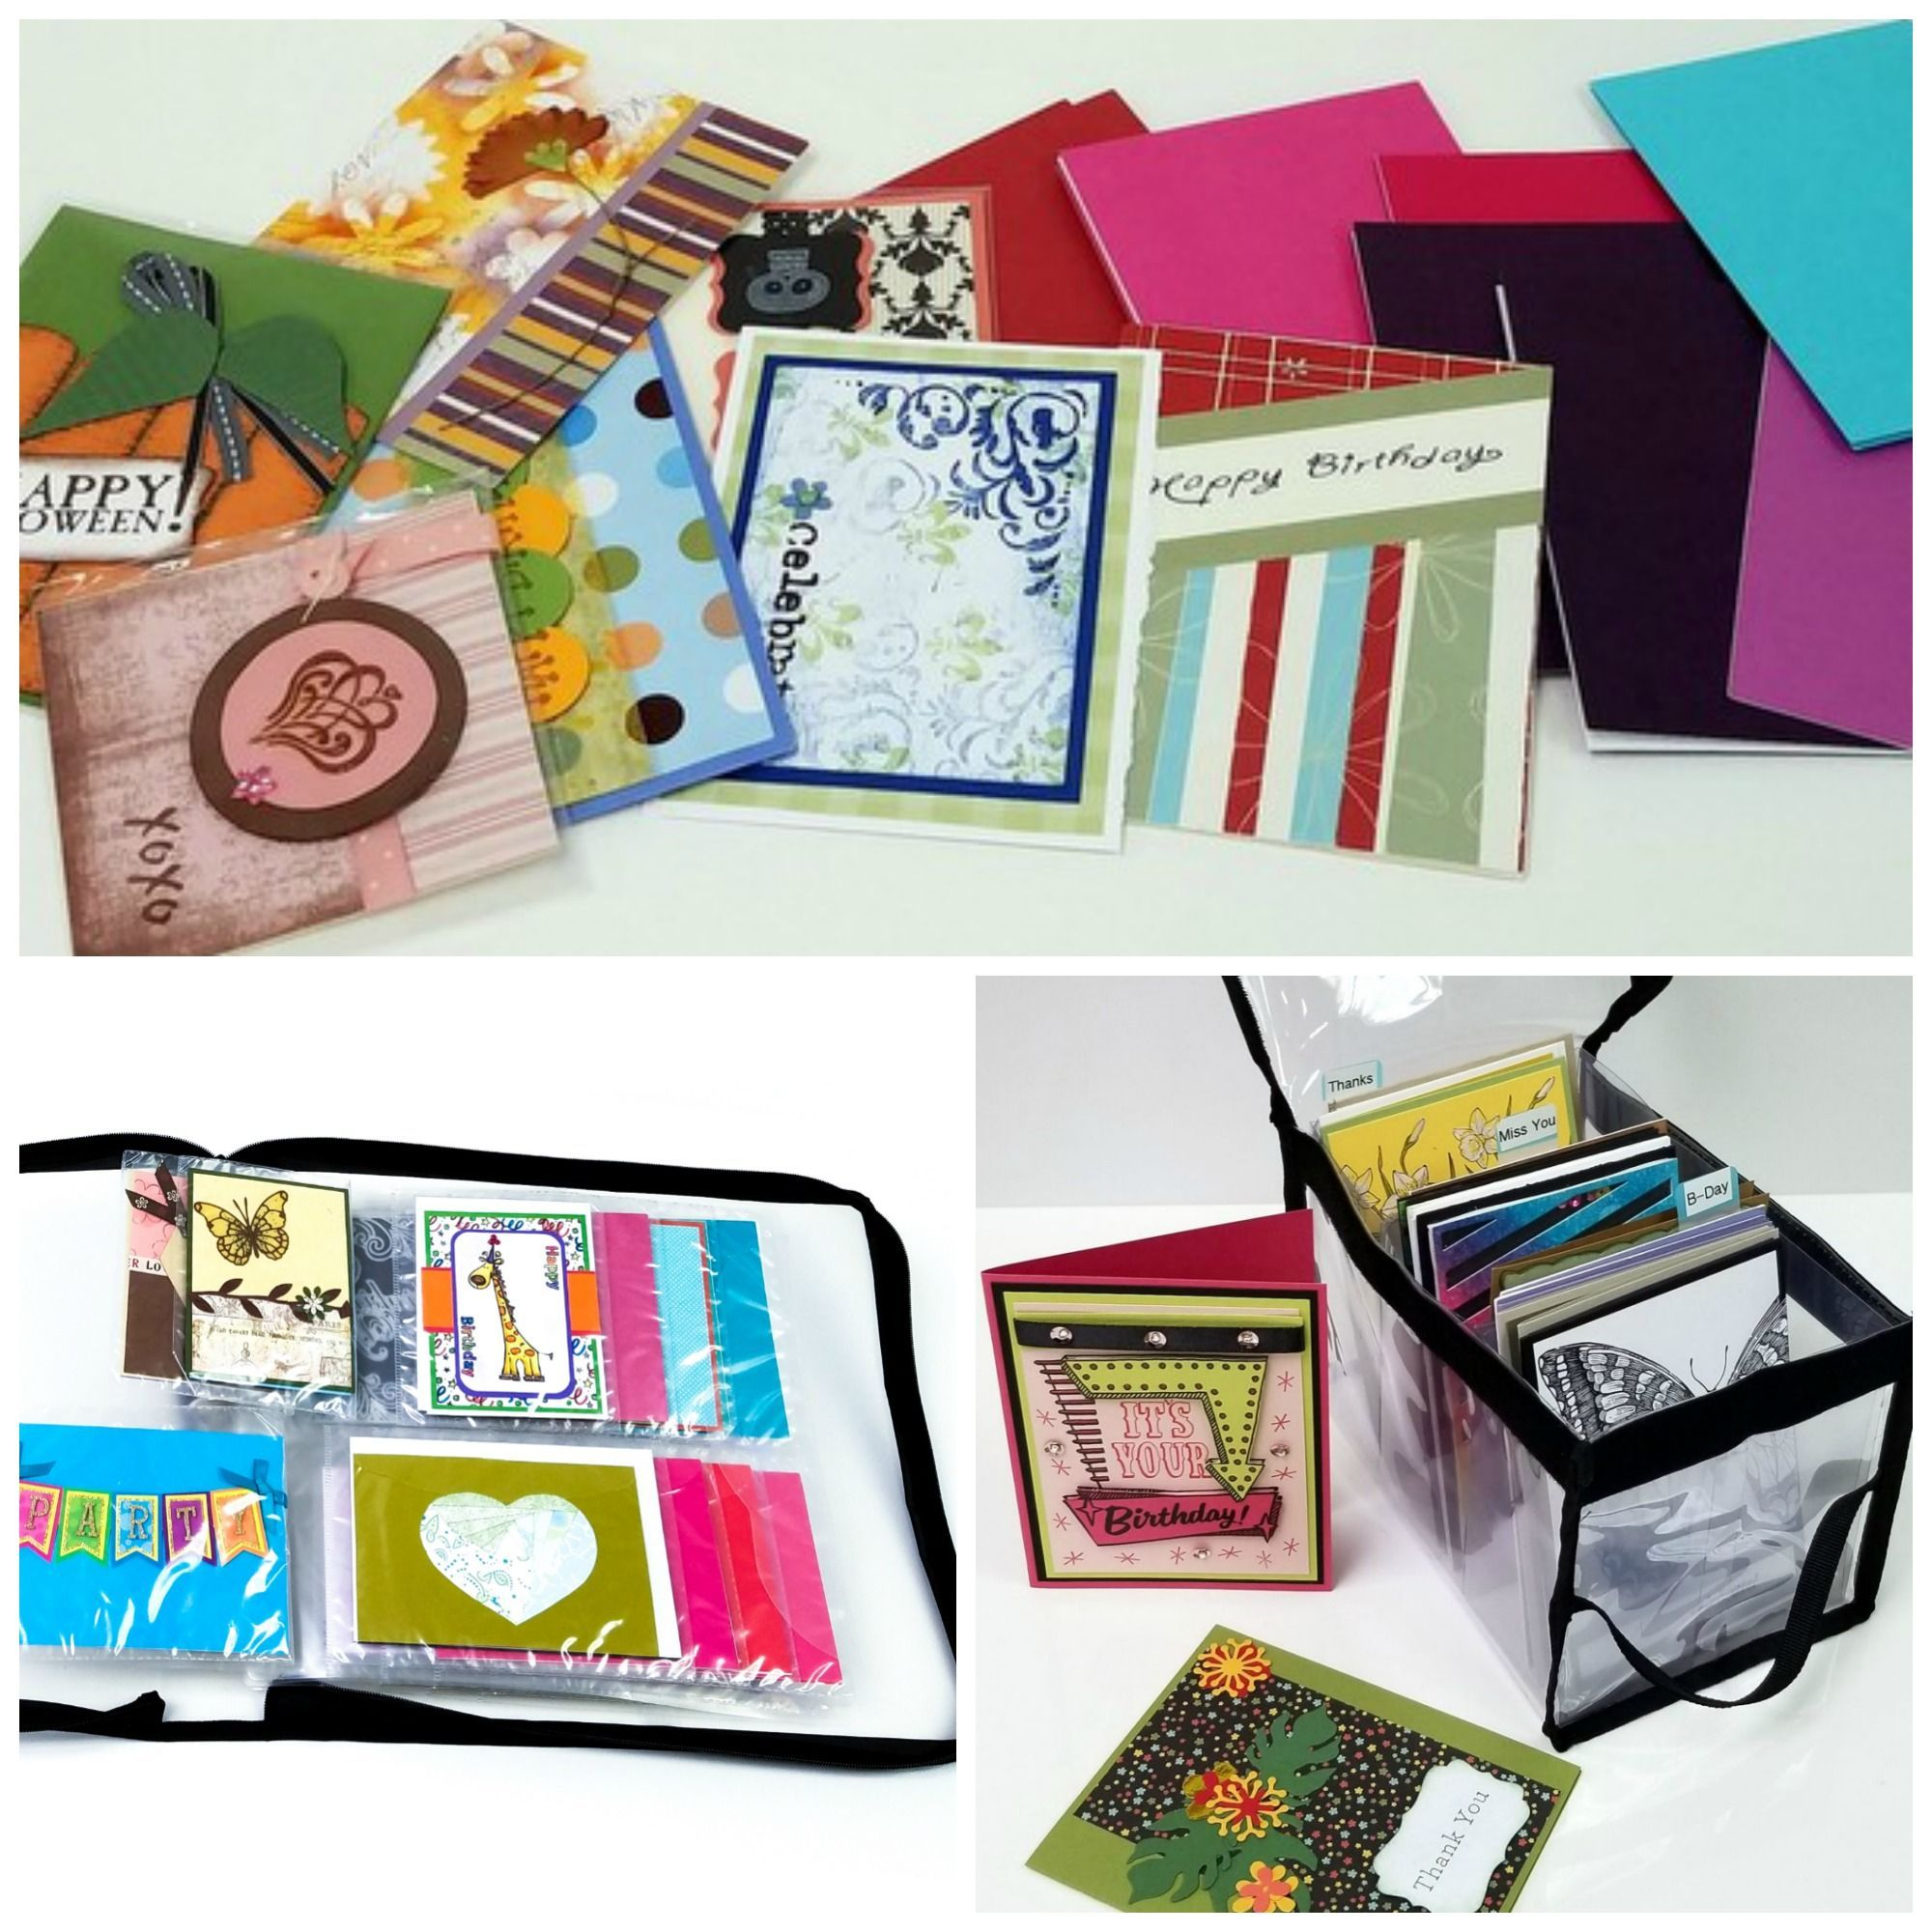 Card Storage Handmade Card Supplies Cards Handmade Card Supplies